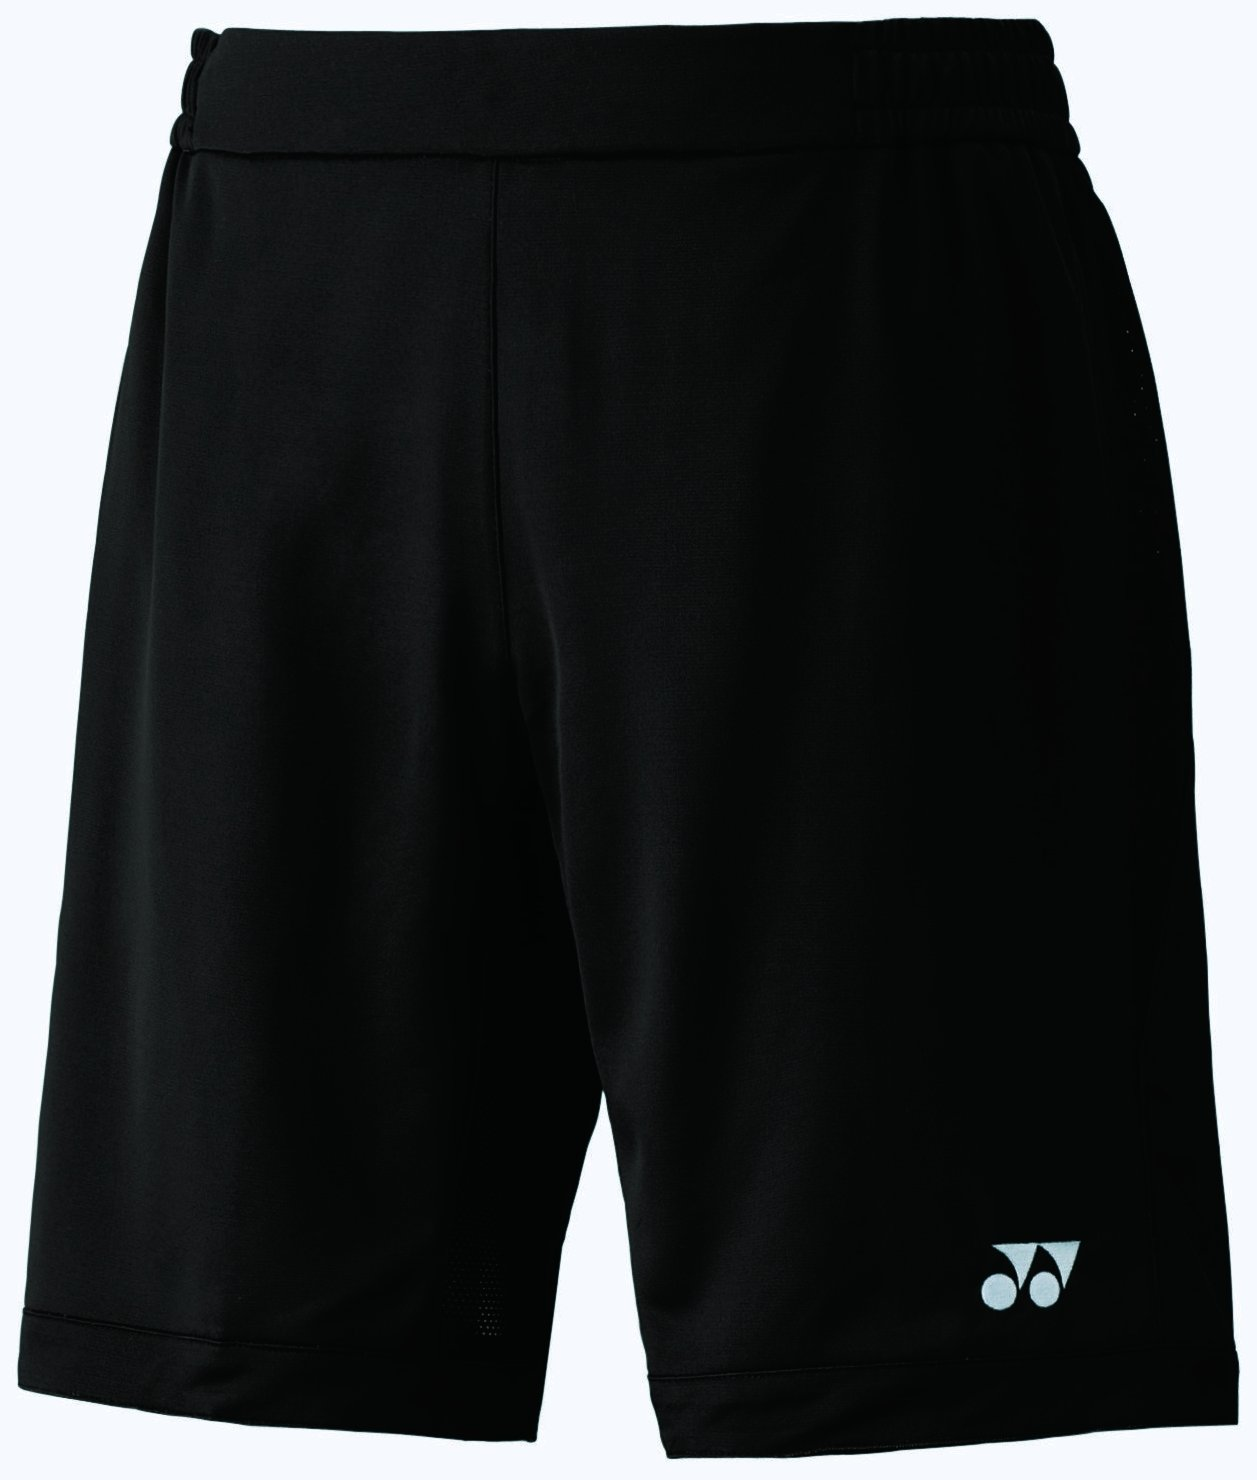 Yonex Tournament Short